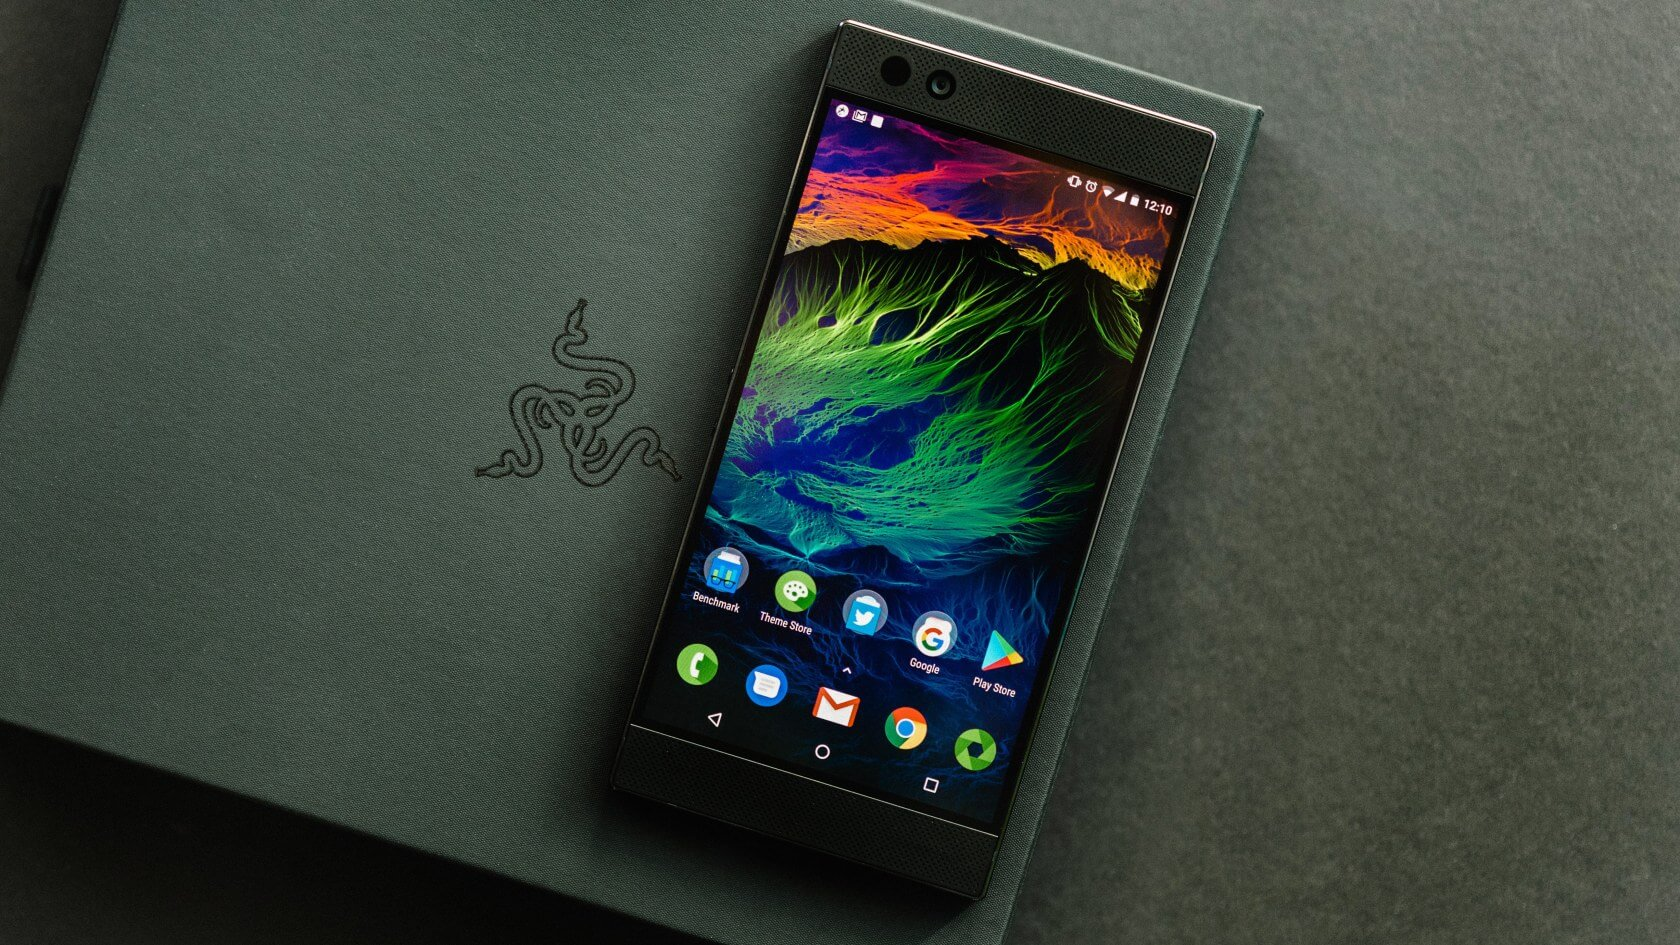 Razer Phone 2 launched with upgrades over the first gen gaming smartphone